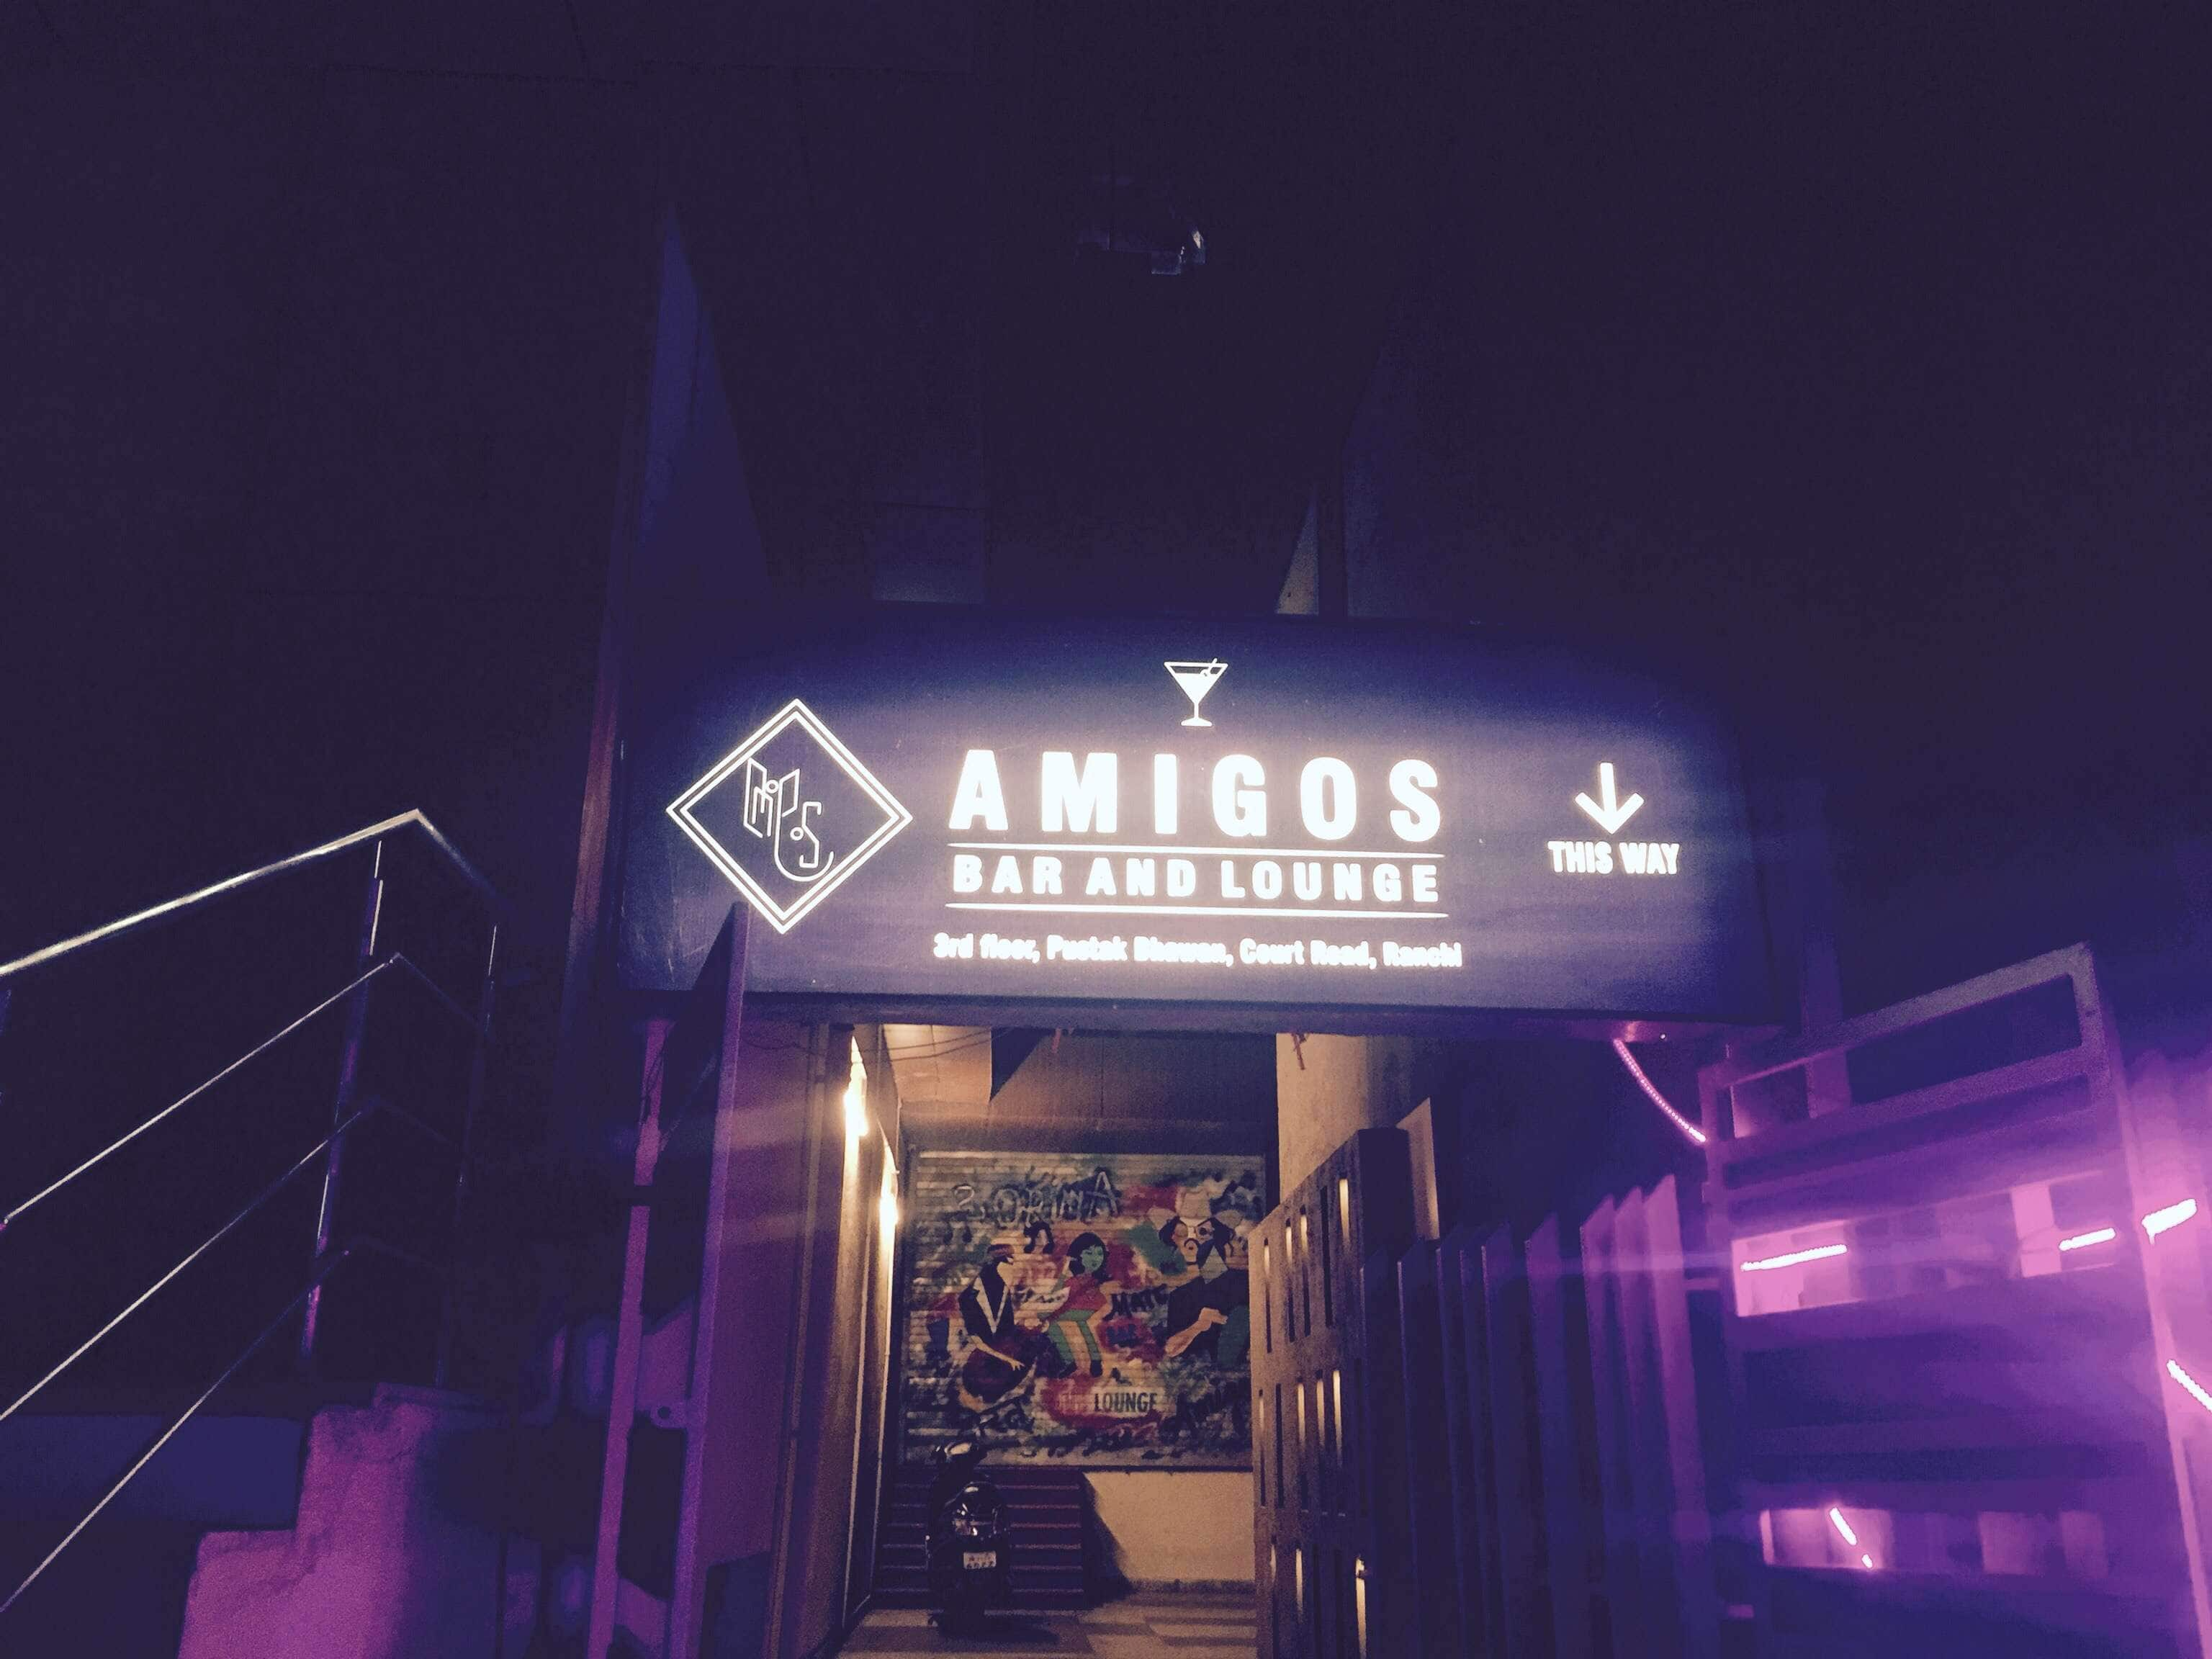 Amigos Bar and Lounge